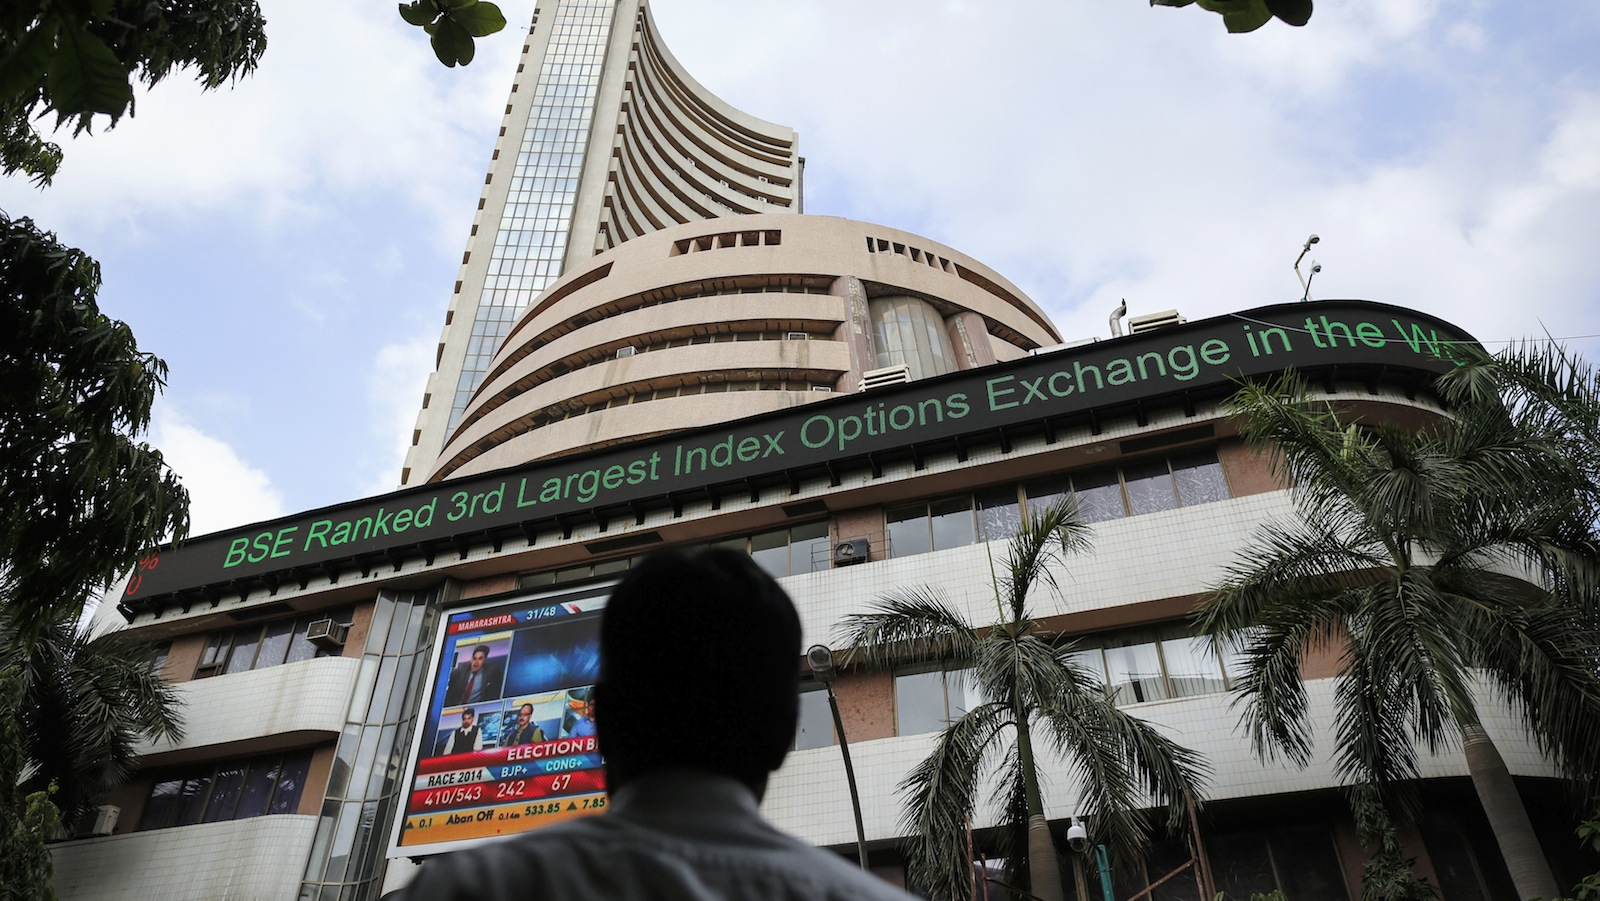 A man looks at a screen across the road displaying the election results on the facade of the Bombay Stock Exchange (BSE) building in Mumbai May 16, 2014. Indian shares rallied to record highs, while the rupee strengthened to near a 10-month high against the dollar, as early vote counts in the country's general elections showed the opposition Bharatiya Janata Party and its allies leading.